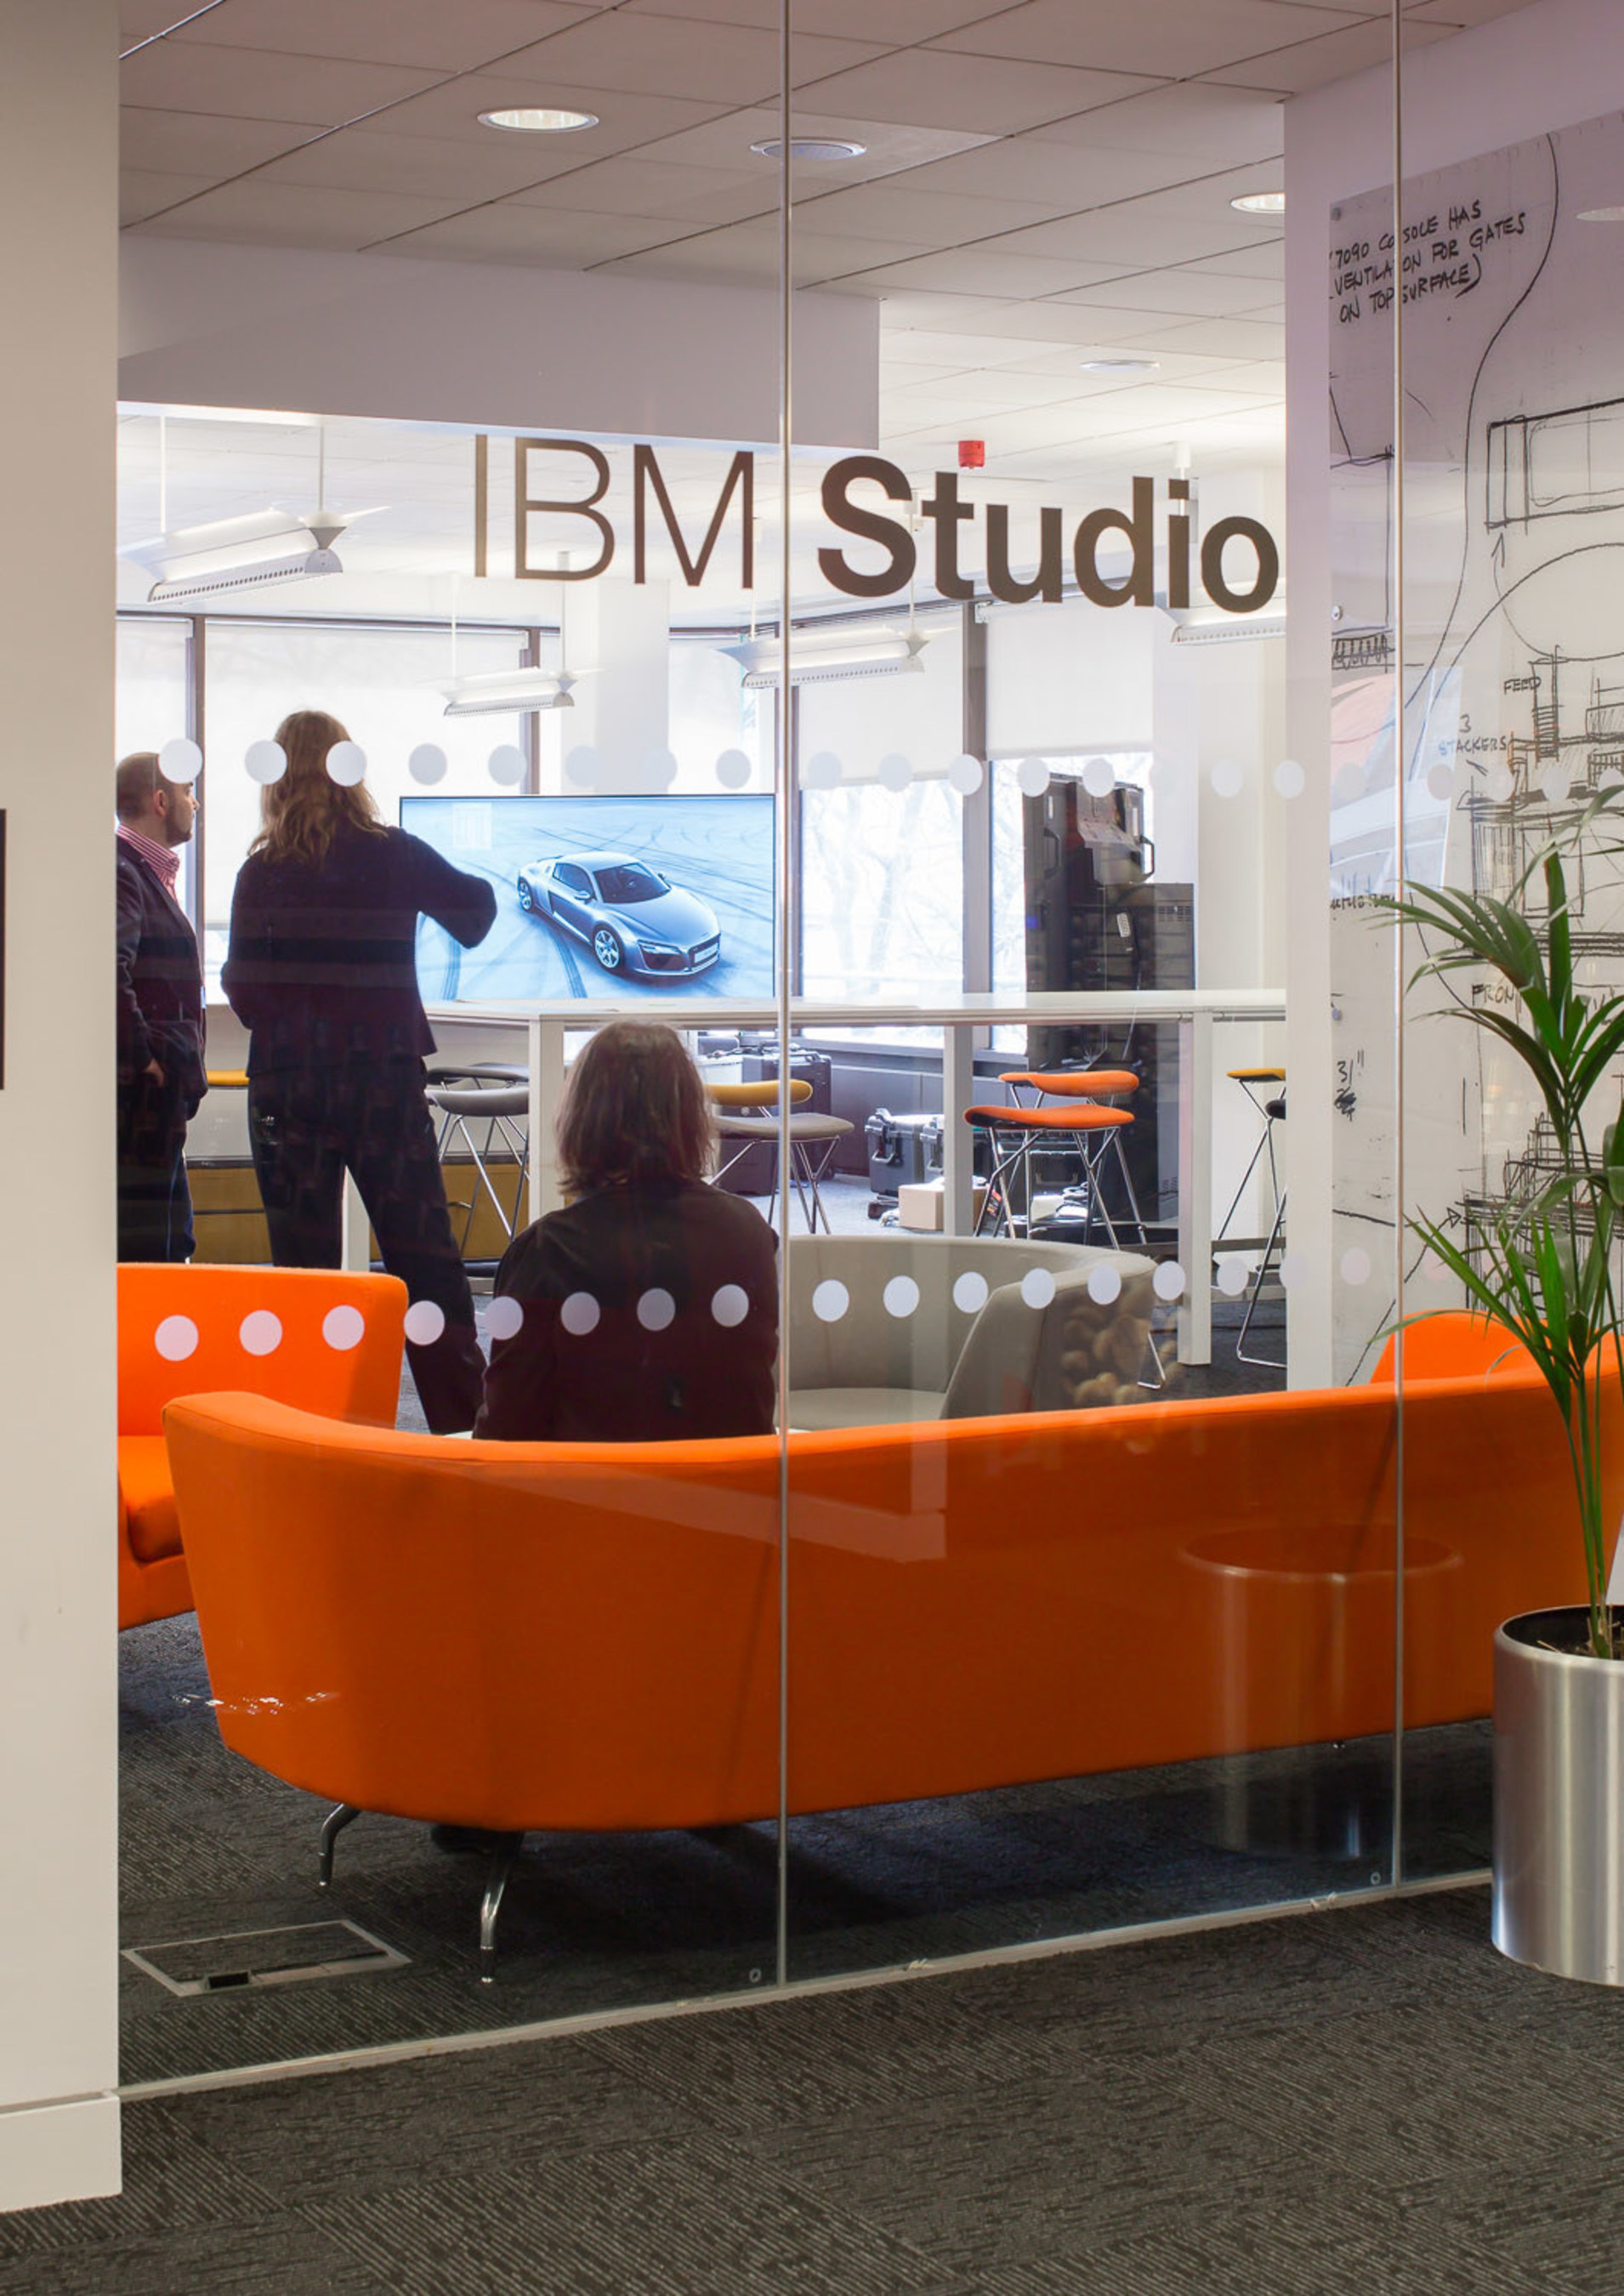 IBM Studio Opens in London to Transform the Client Experience